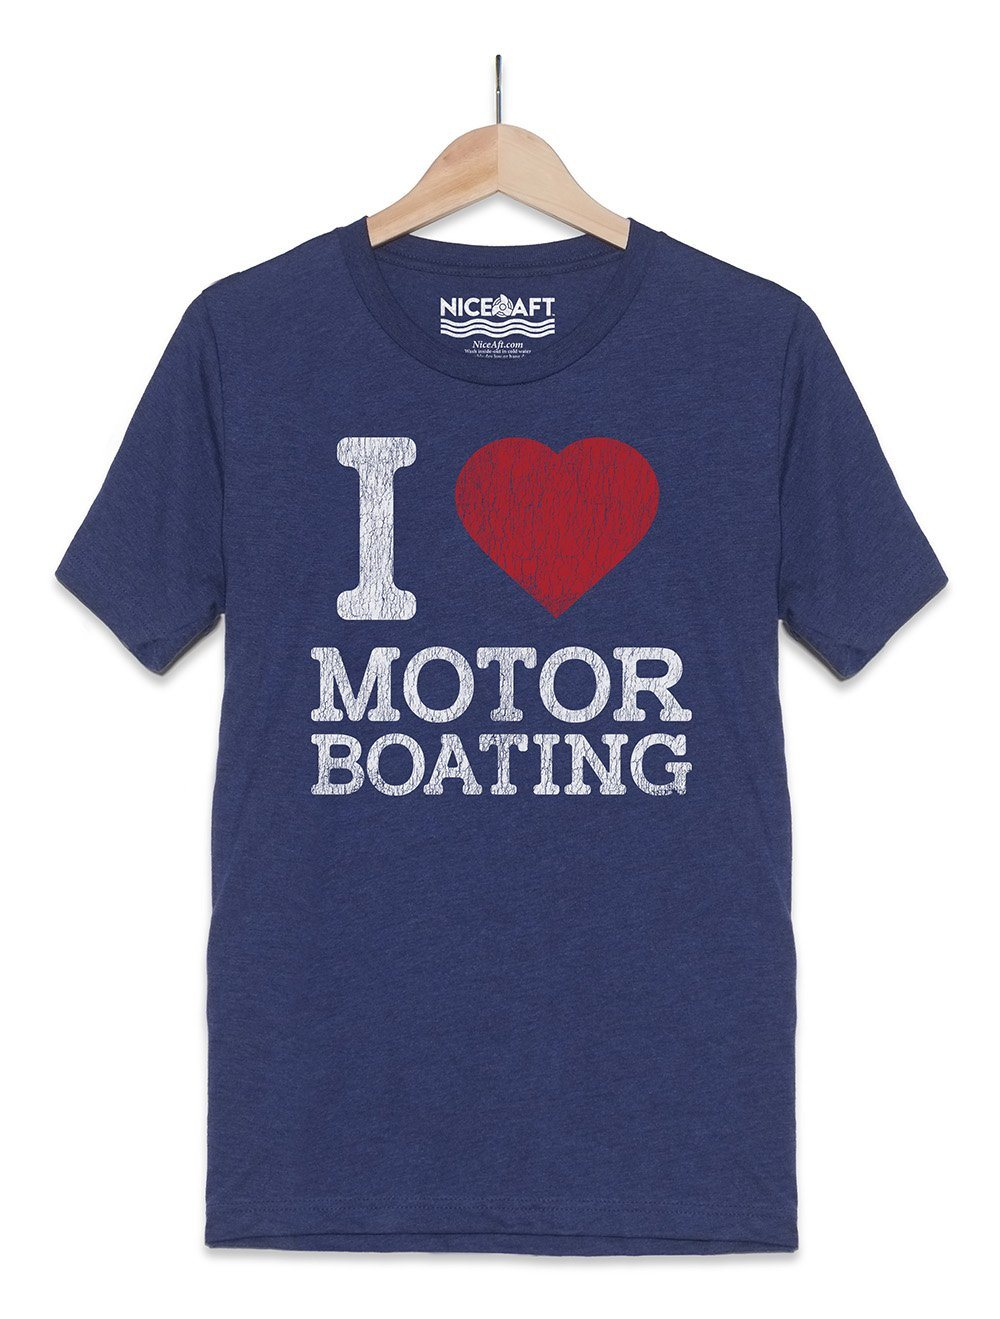 Boat Shirt | Motor Boating